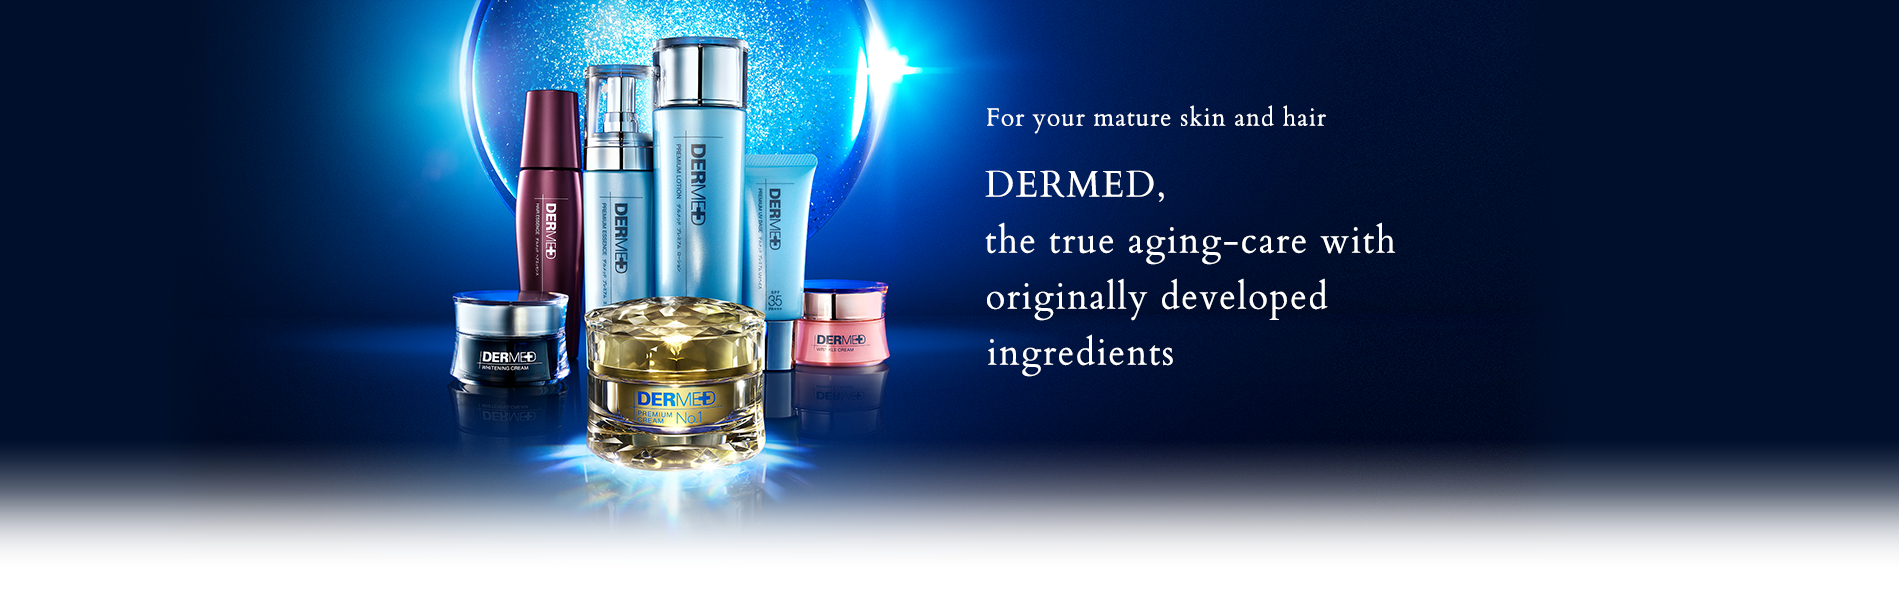 For your mature skin and hair DERMED, the true aging-care with originally developed ingredients